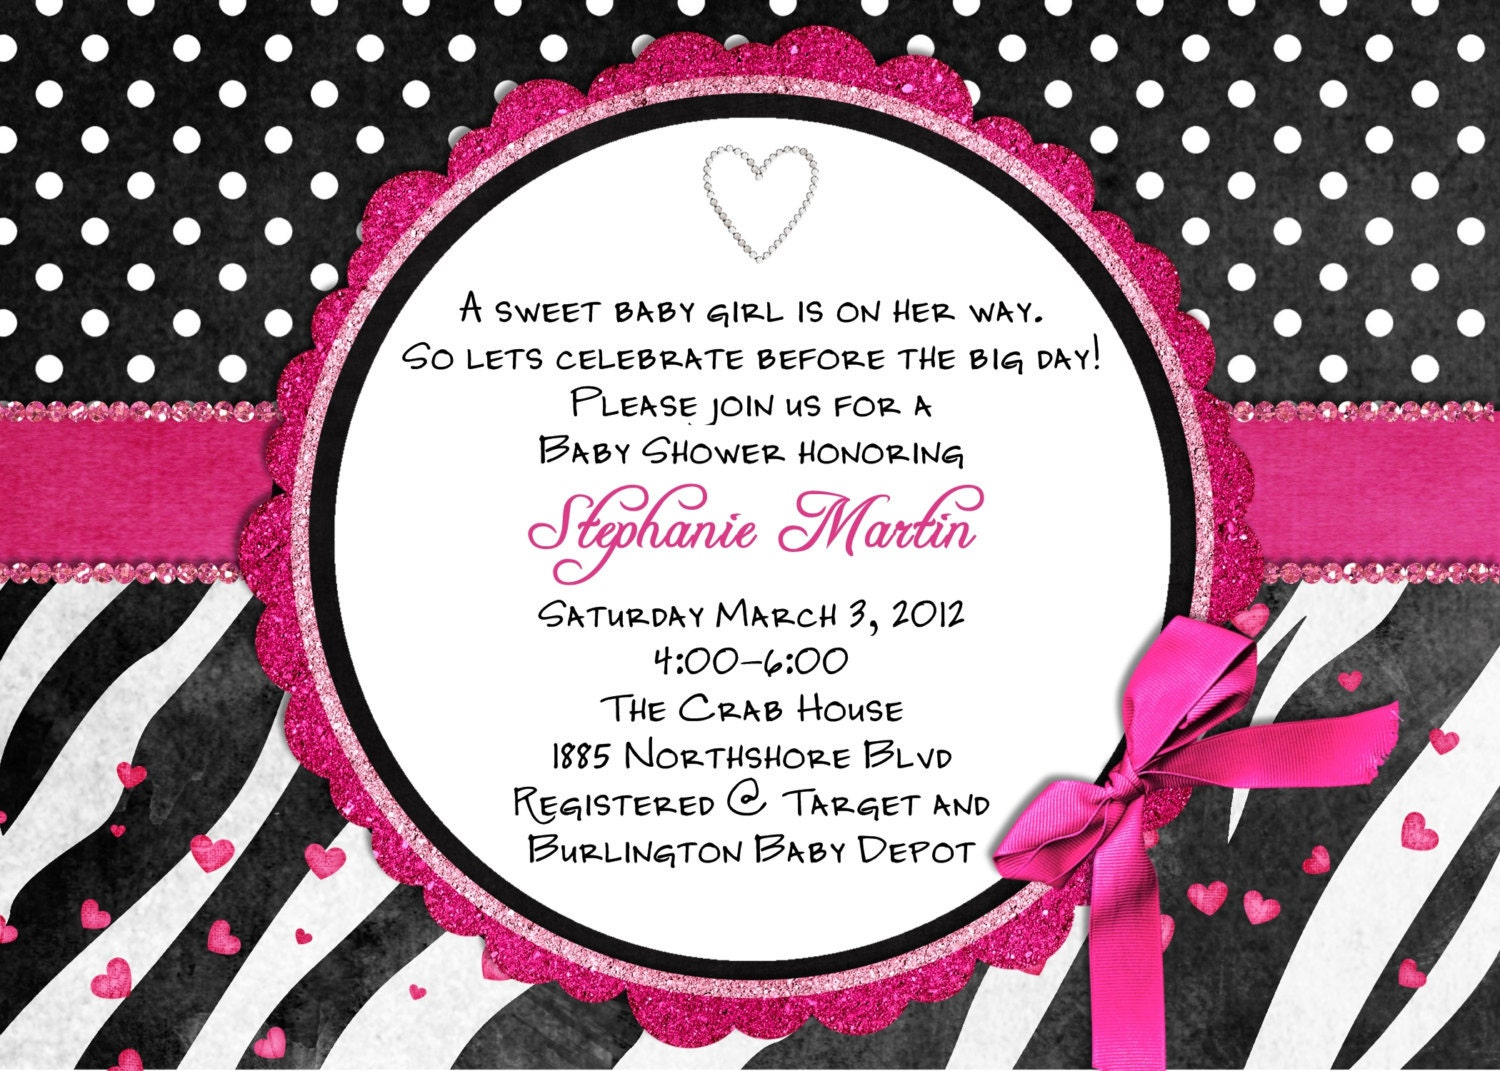 Zebra Baby Shower Invitations is the best ideas you have to choose for invitation example